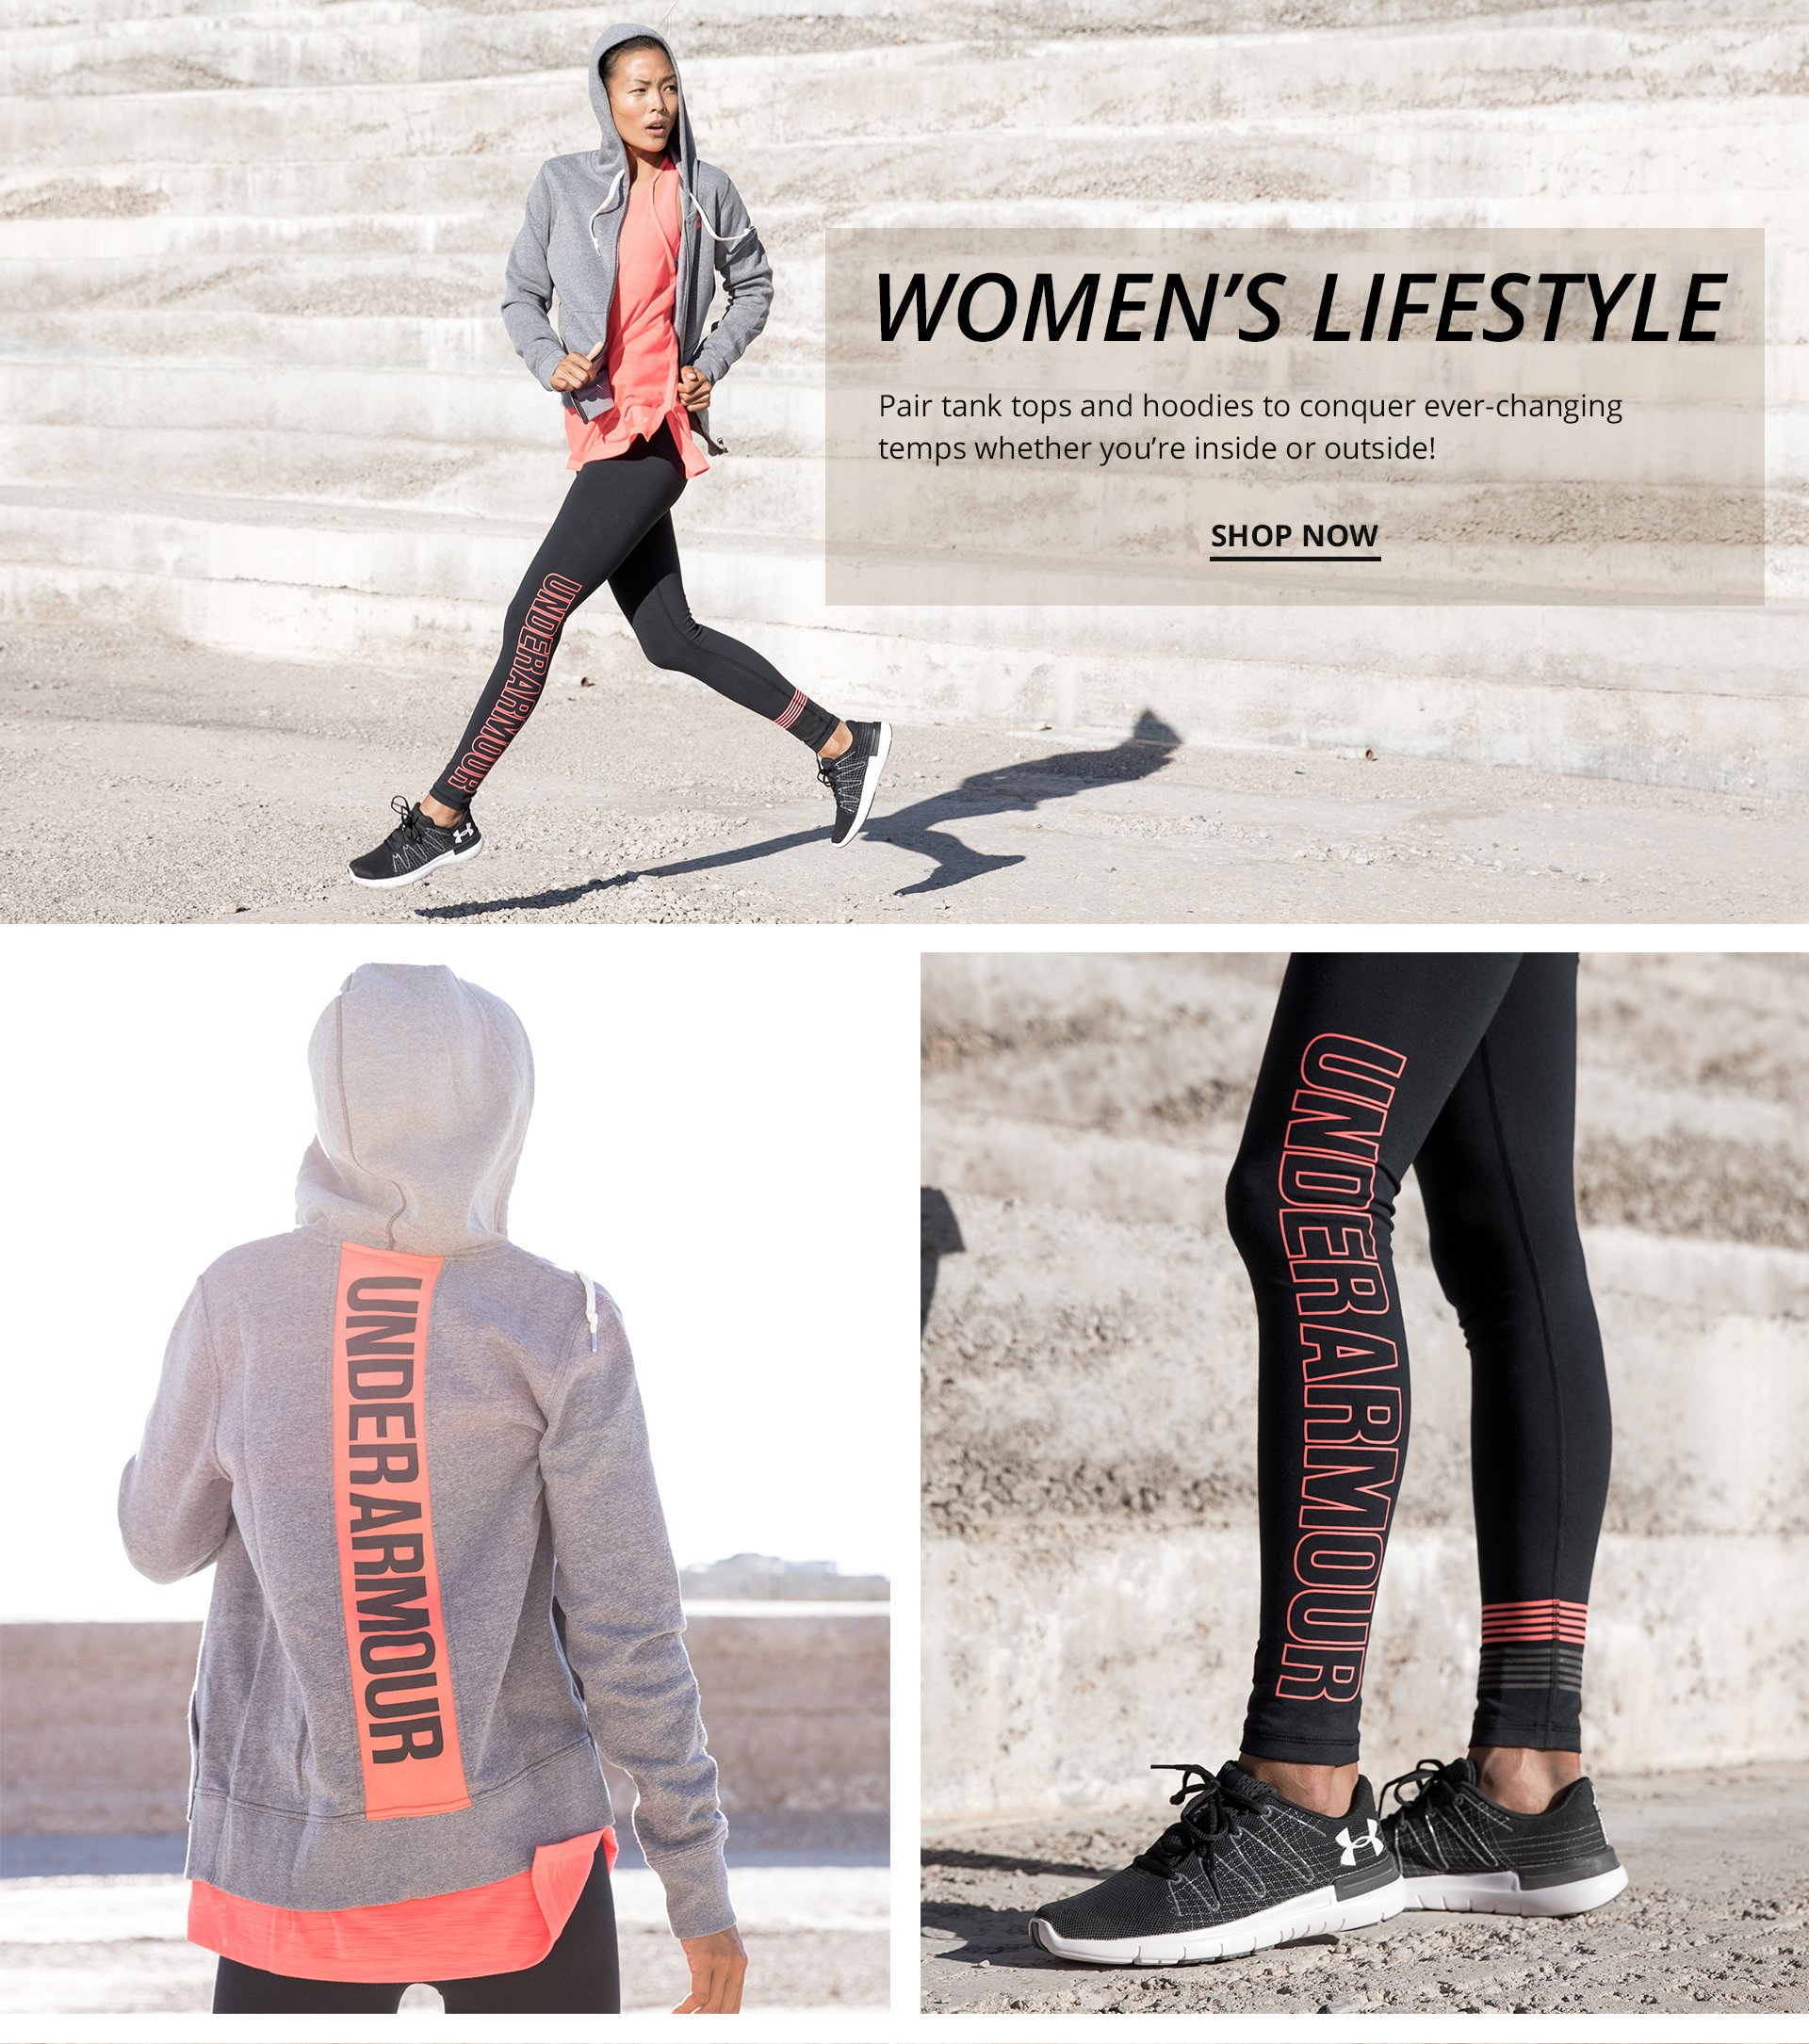 Shop Under Armour Women's Lifestyle